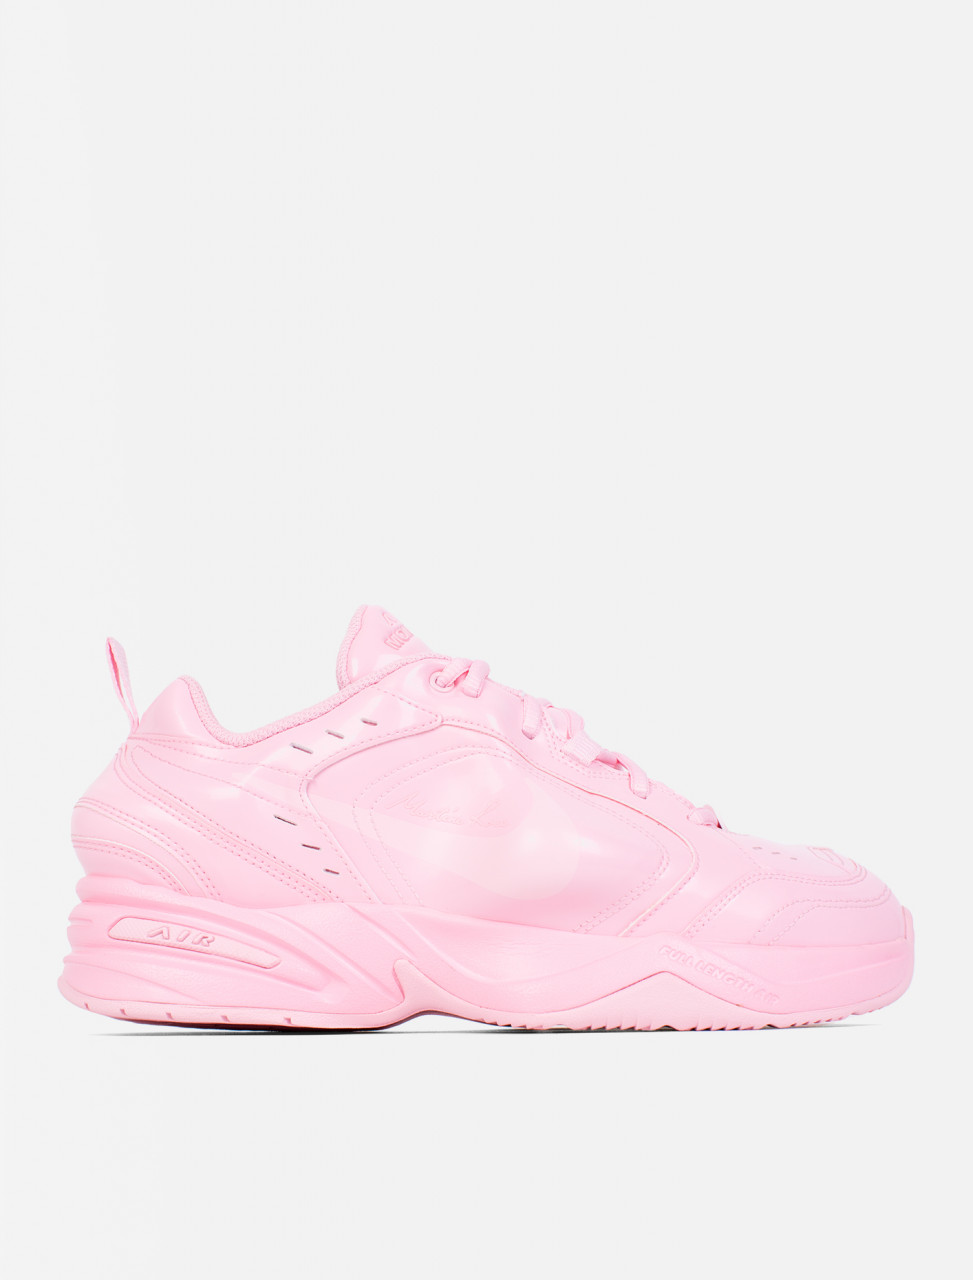 best sneakers d79dc 7be80 x Martine Rose Air Monarch IV Sneaker